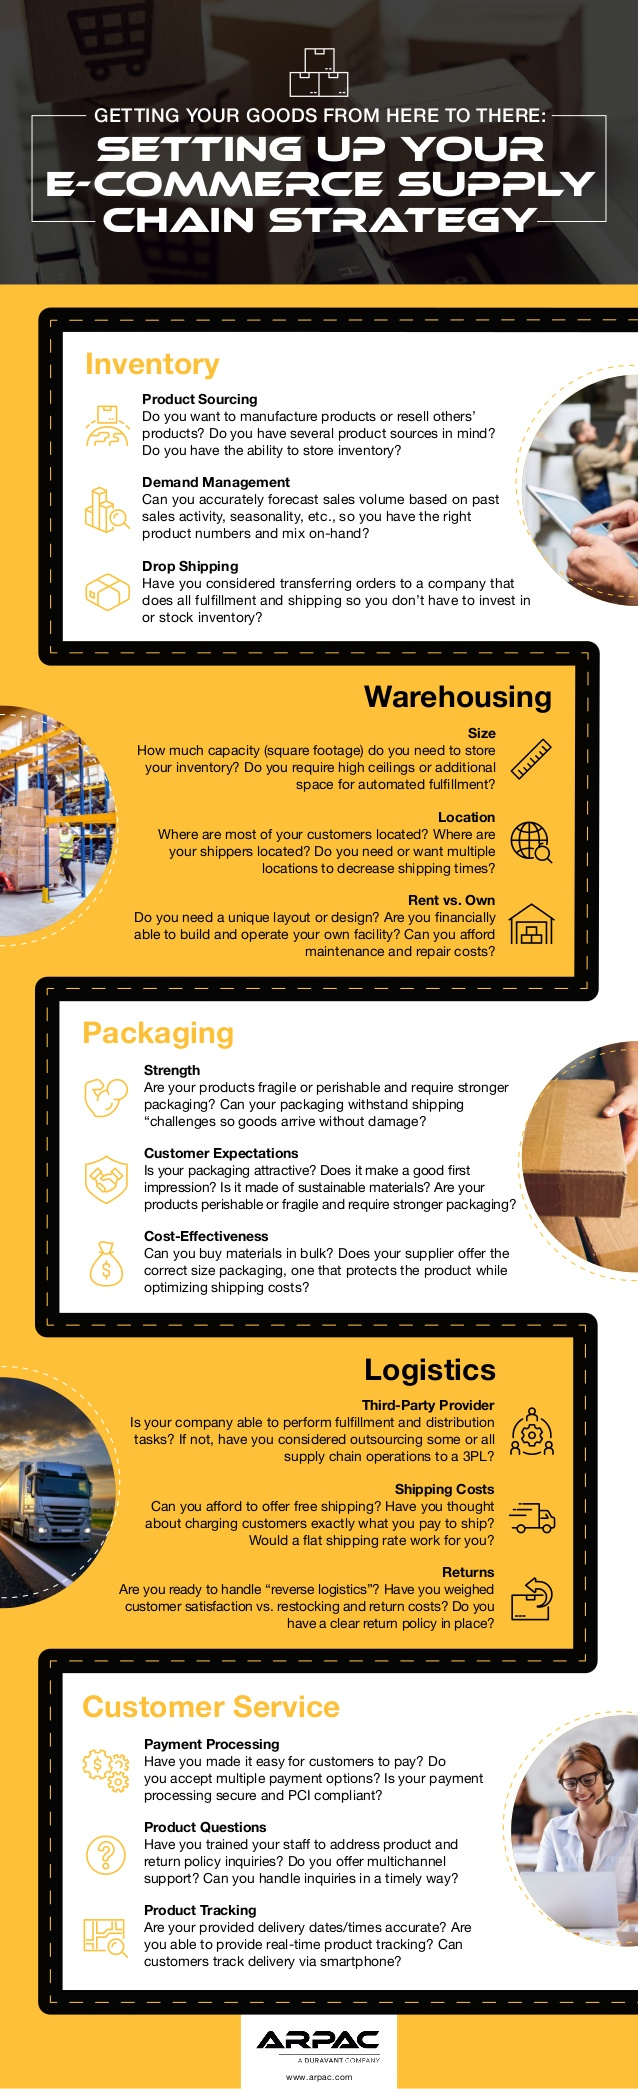 setting-up-your-ecommerce-supply-chain-1-638